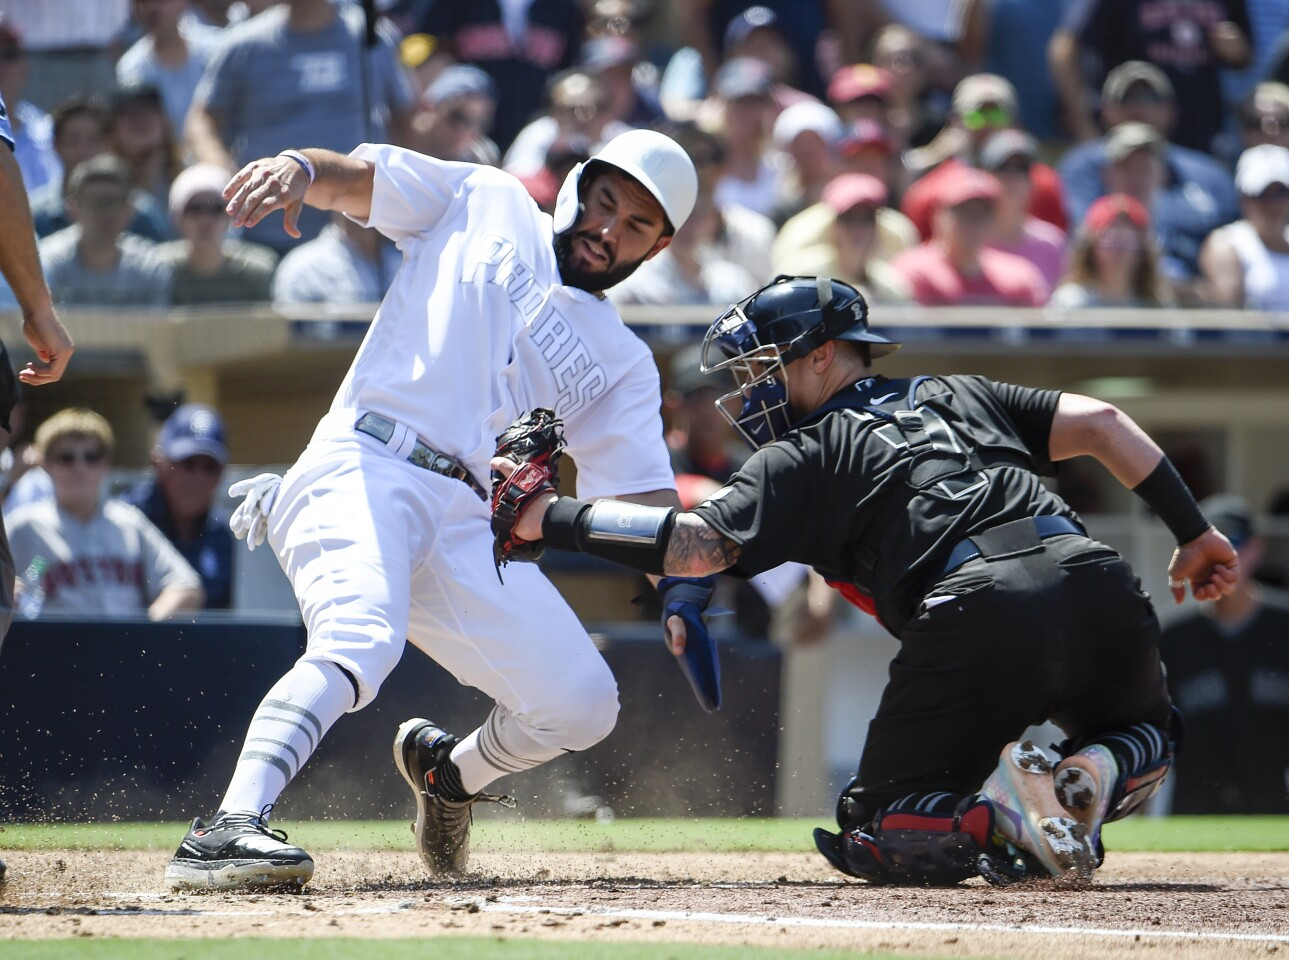 SAN DIEGO, CA - AUGUST 25: Eric Hosmer #30 of the San Diego Padres is tagged out at the plate by Christian Vazquez #7 of the Boston Red Sox during the third inning of a baseball game at Petco Park August 25, 2019 in San Diego, California. Teams are wearing special color schemed uniforms with players choosing nicknames to display for Players' Weekend. (Photo by Denis Poroy/Getty Images) ** OUTS - ELSENT, FPG, CM - OUTS * NM, PH, VA if sourced by CT, LA or MoD **